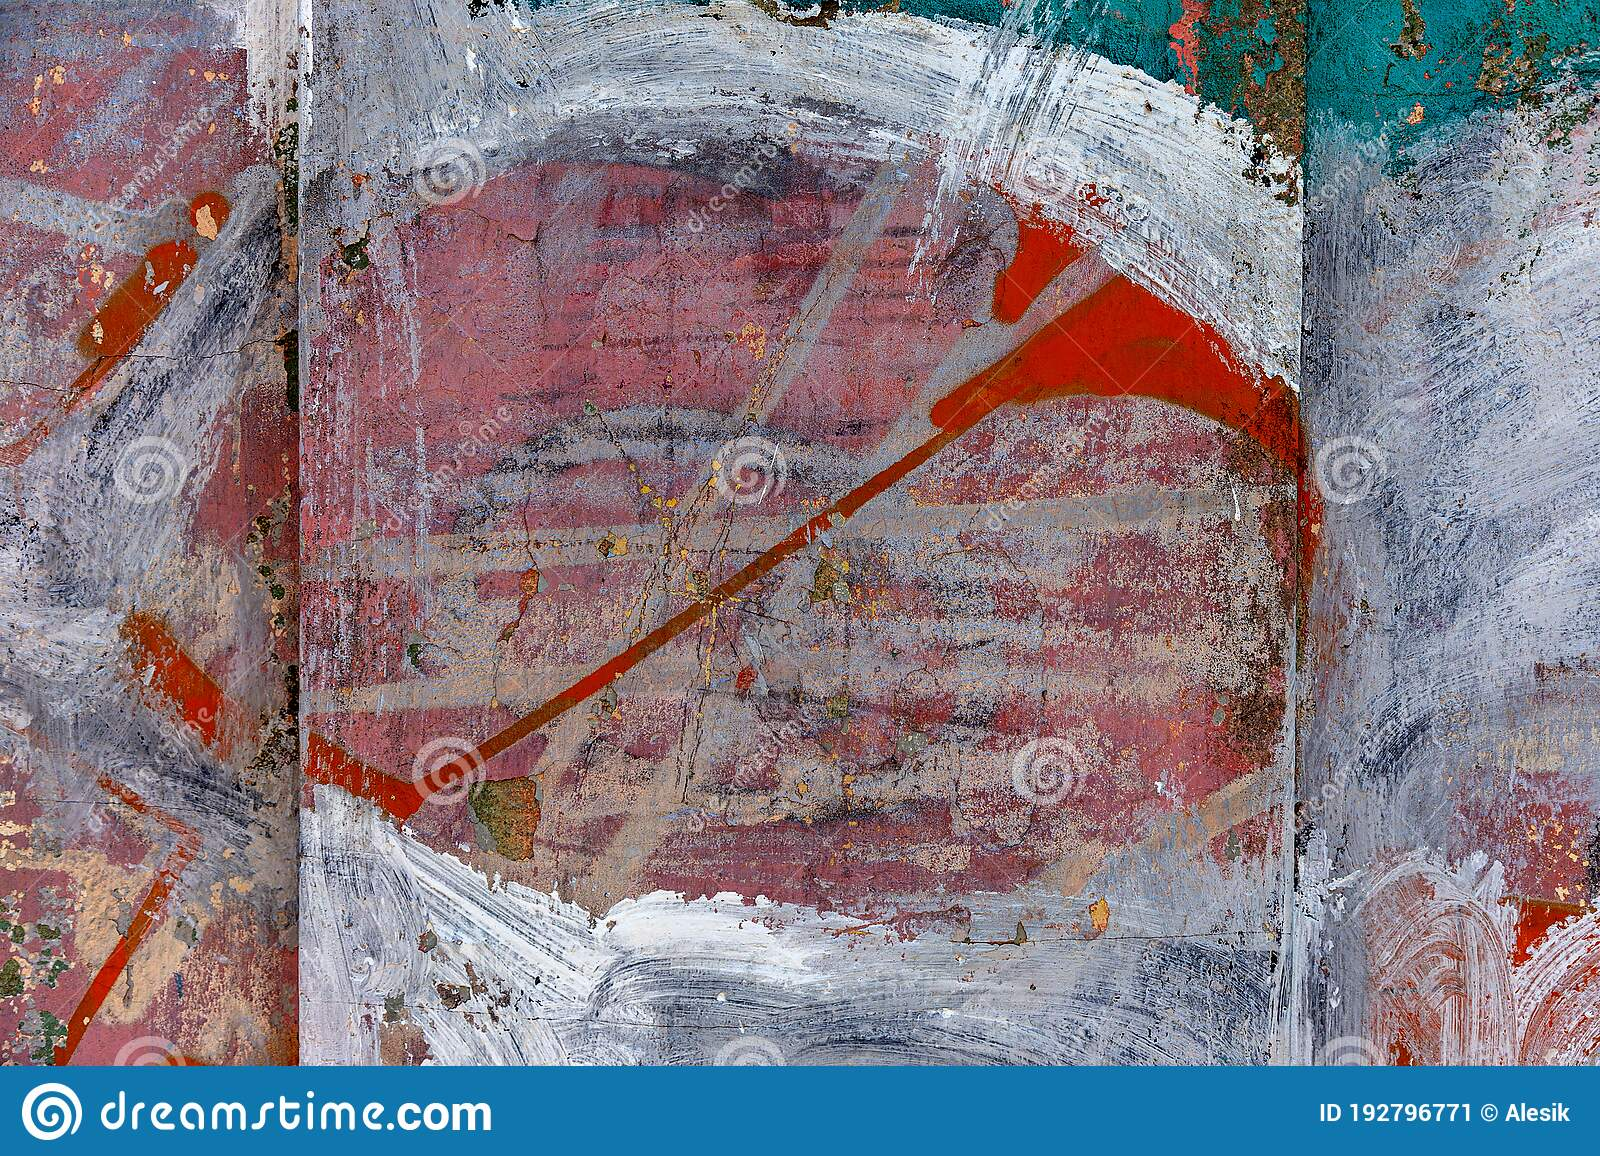 Abstract Background Of Brush Strokes On City Wall For Creative Backdrop Beautiful Street Art Graffiti Vandal Hooligans Have Stock Image Image Of Letter Colorful 192796771